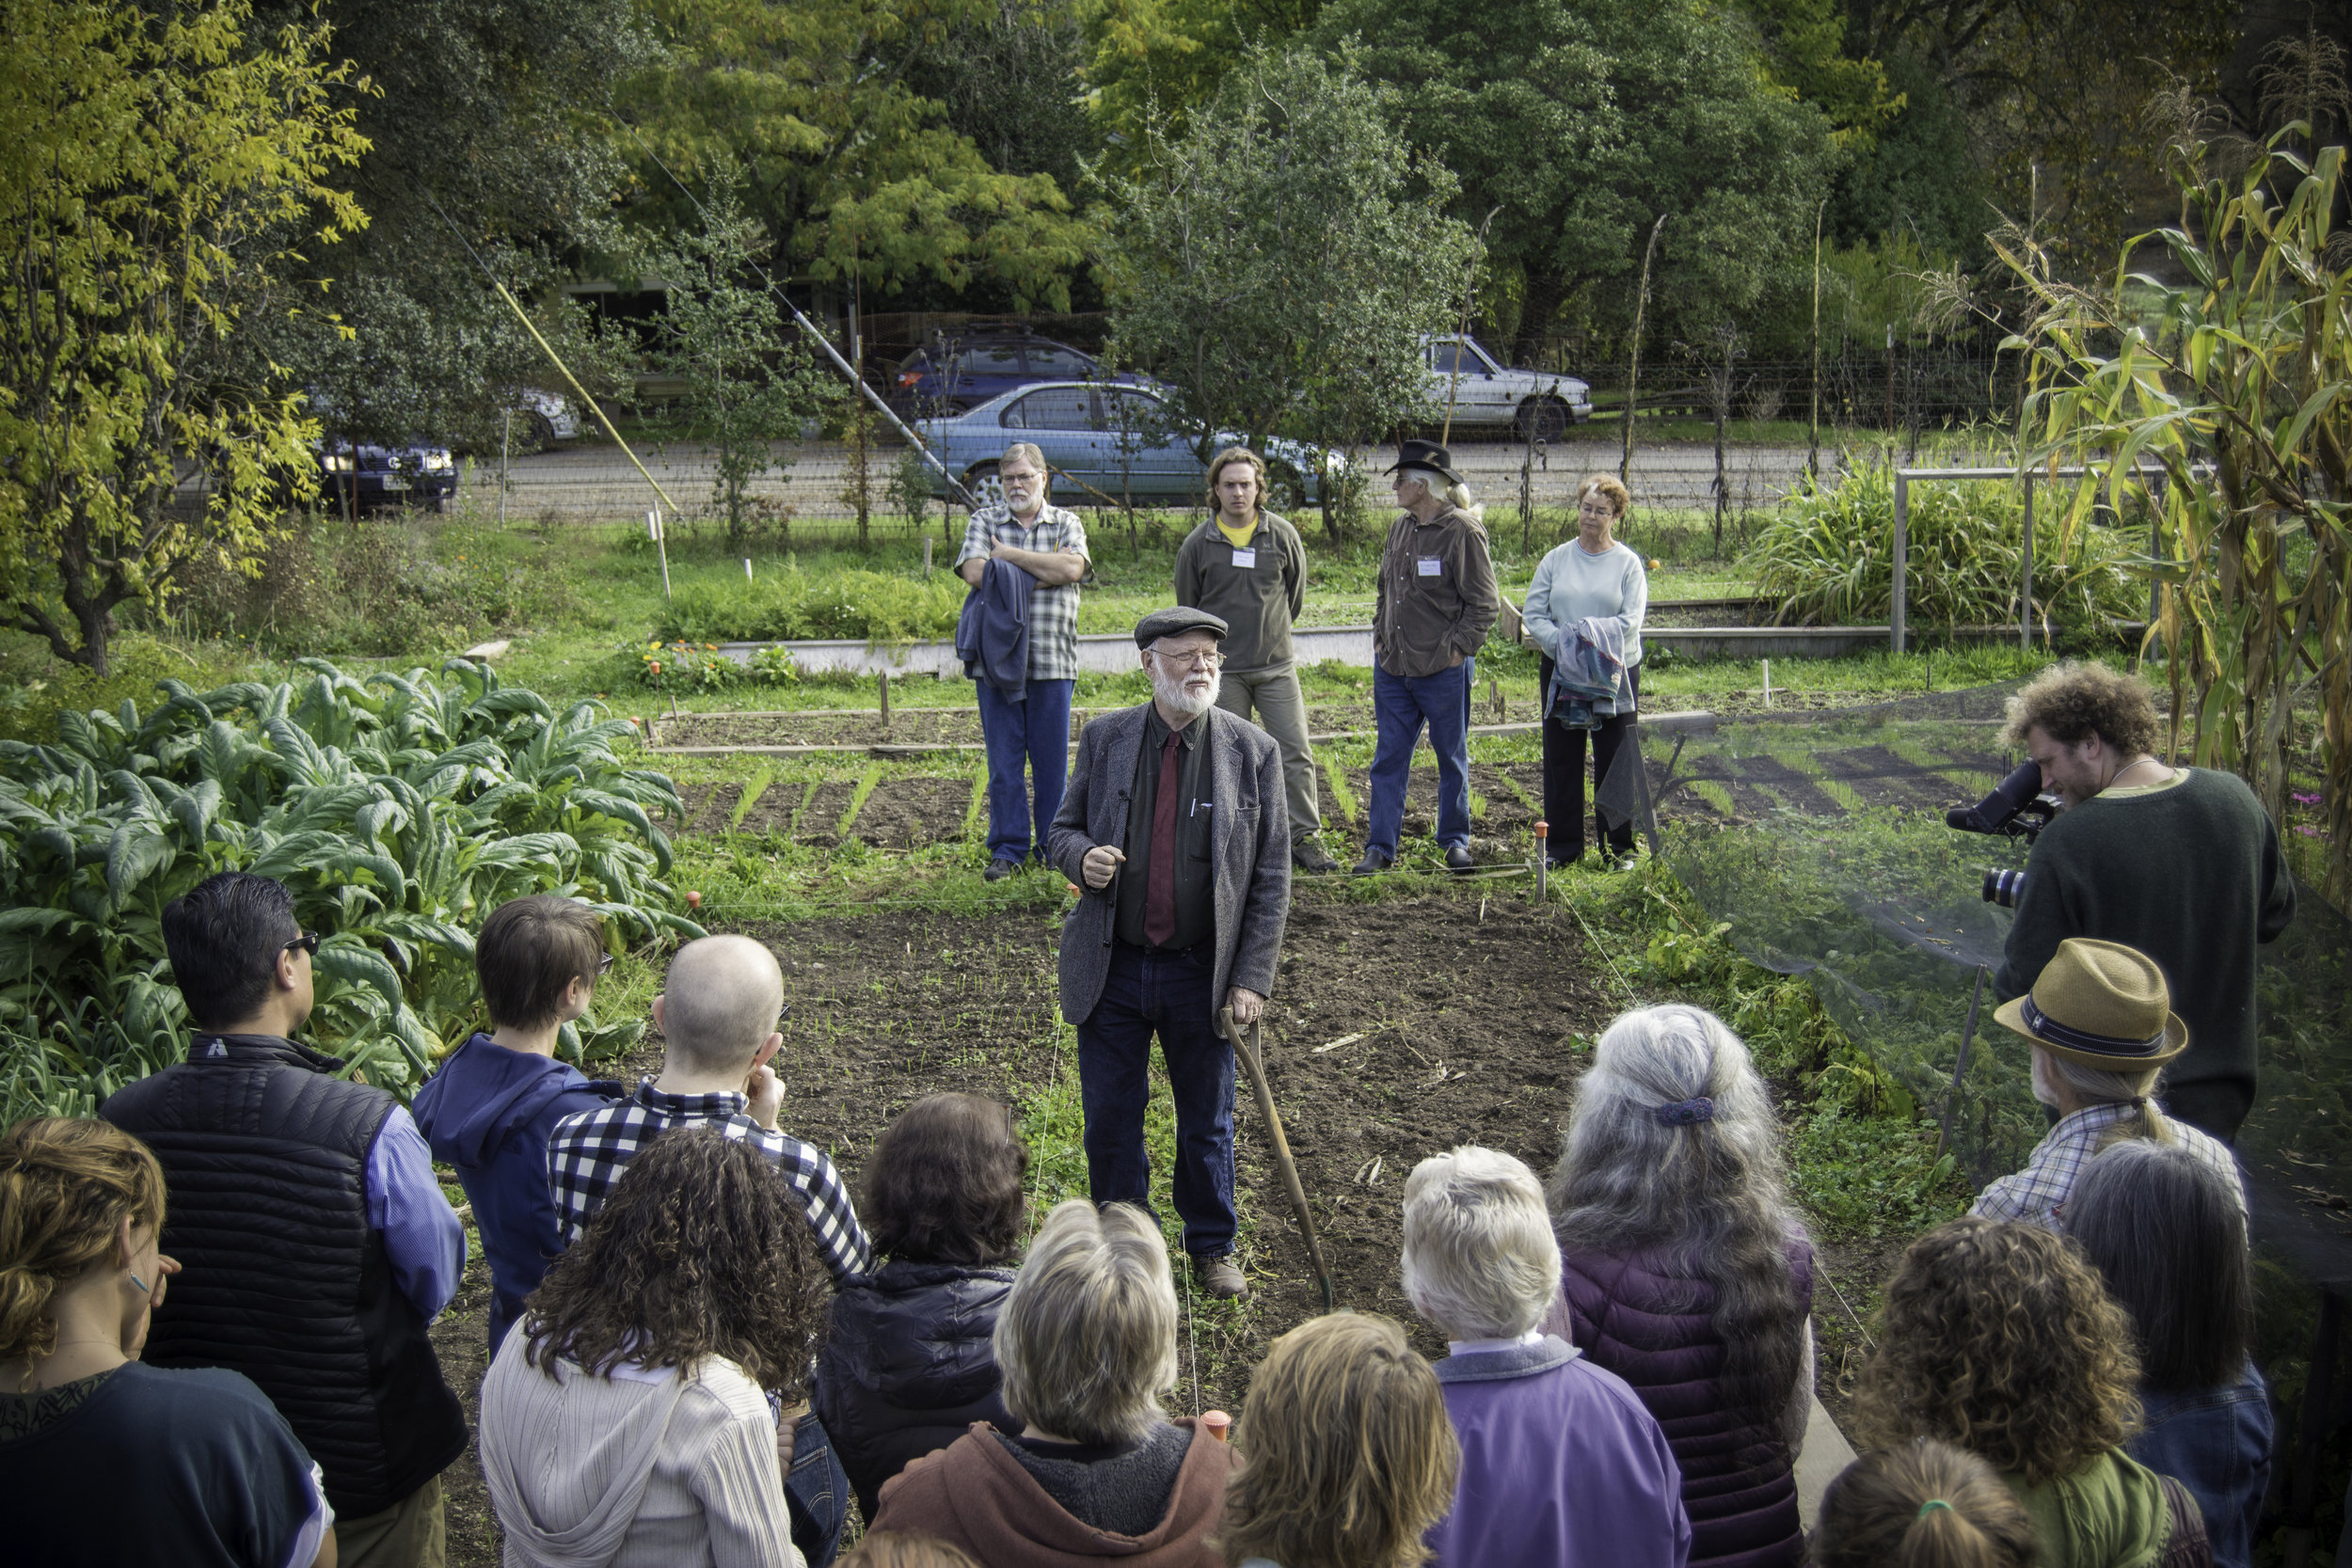 Ecology Action - Consider taking a 3-day workshop with John Jeavons at Ecology Action's Research and Demonstration Farm in Willits California.To go one step further, consider an internship and live at one of Ecology Action's sites in California, to learn in depth and become a teacher for your community.